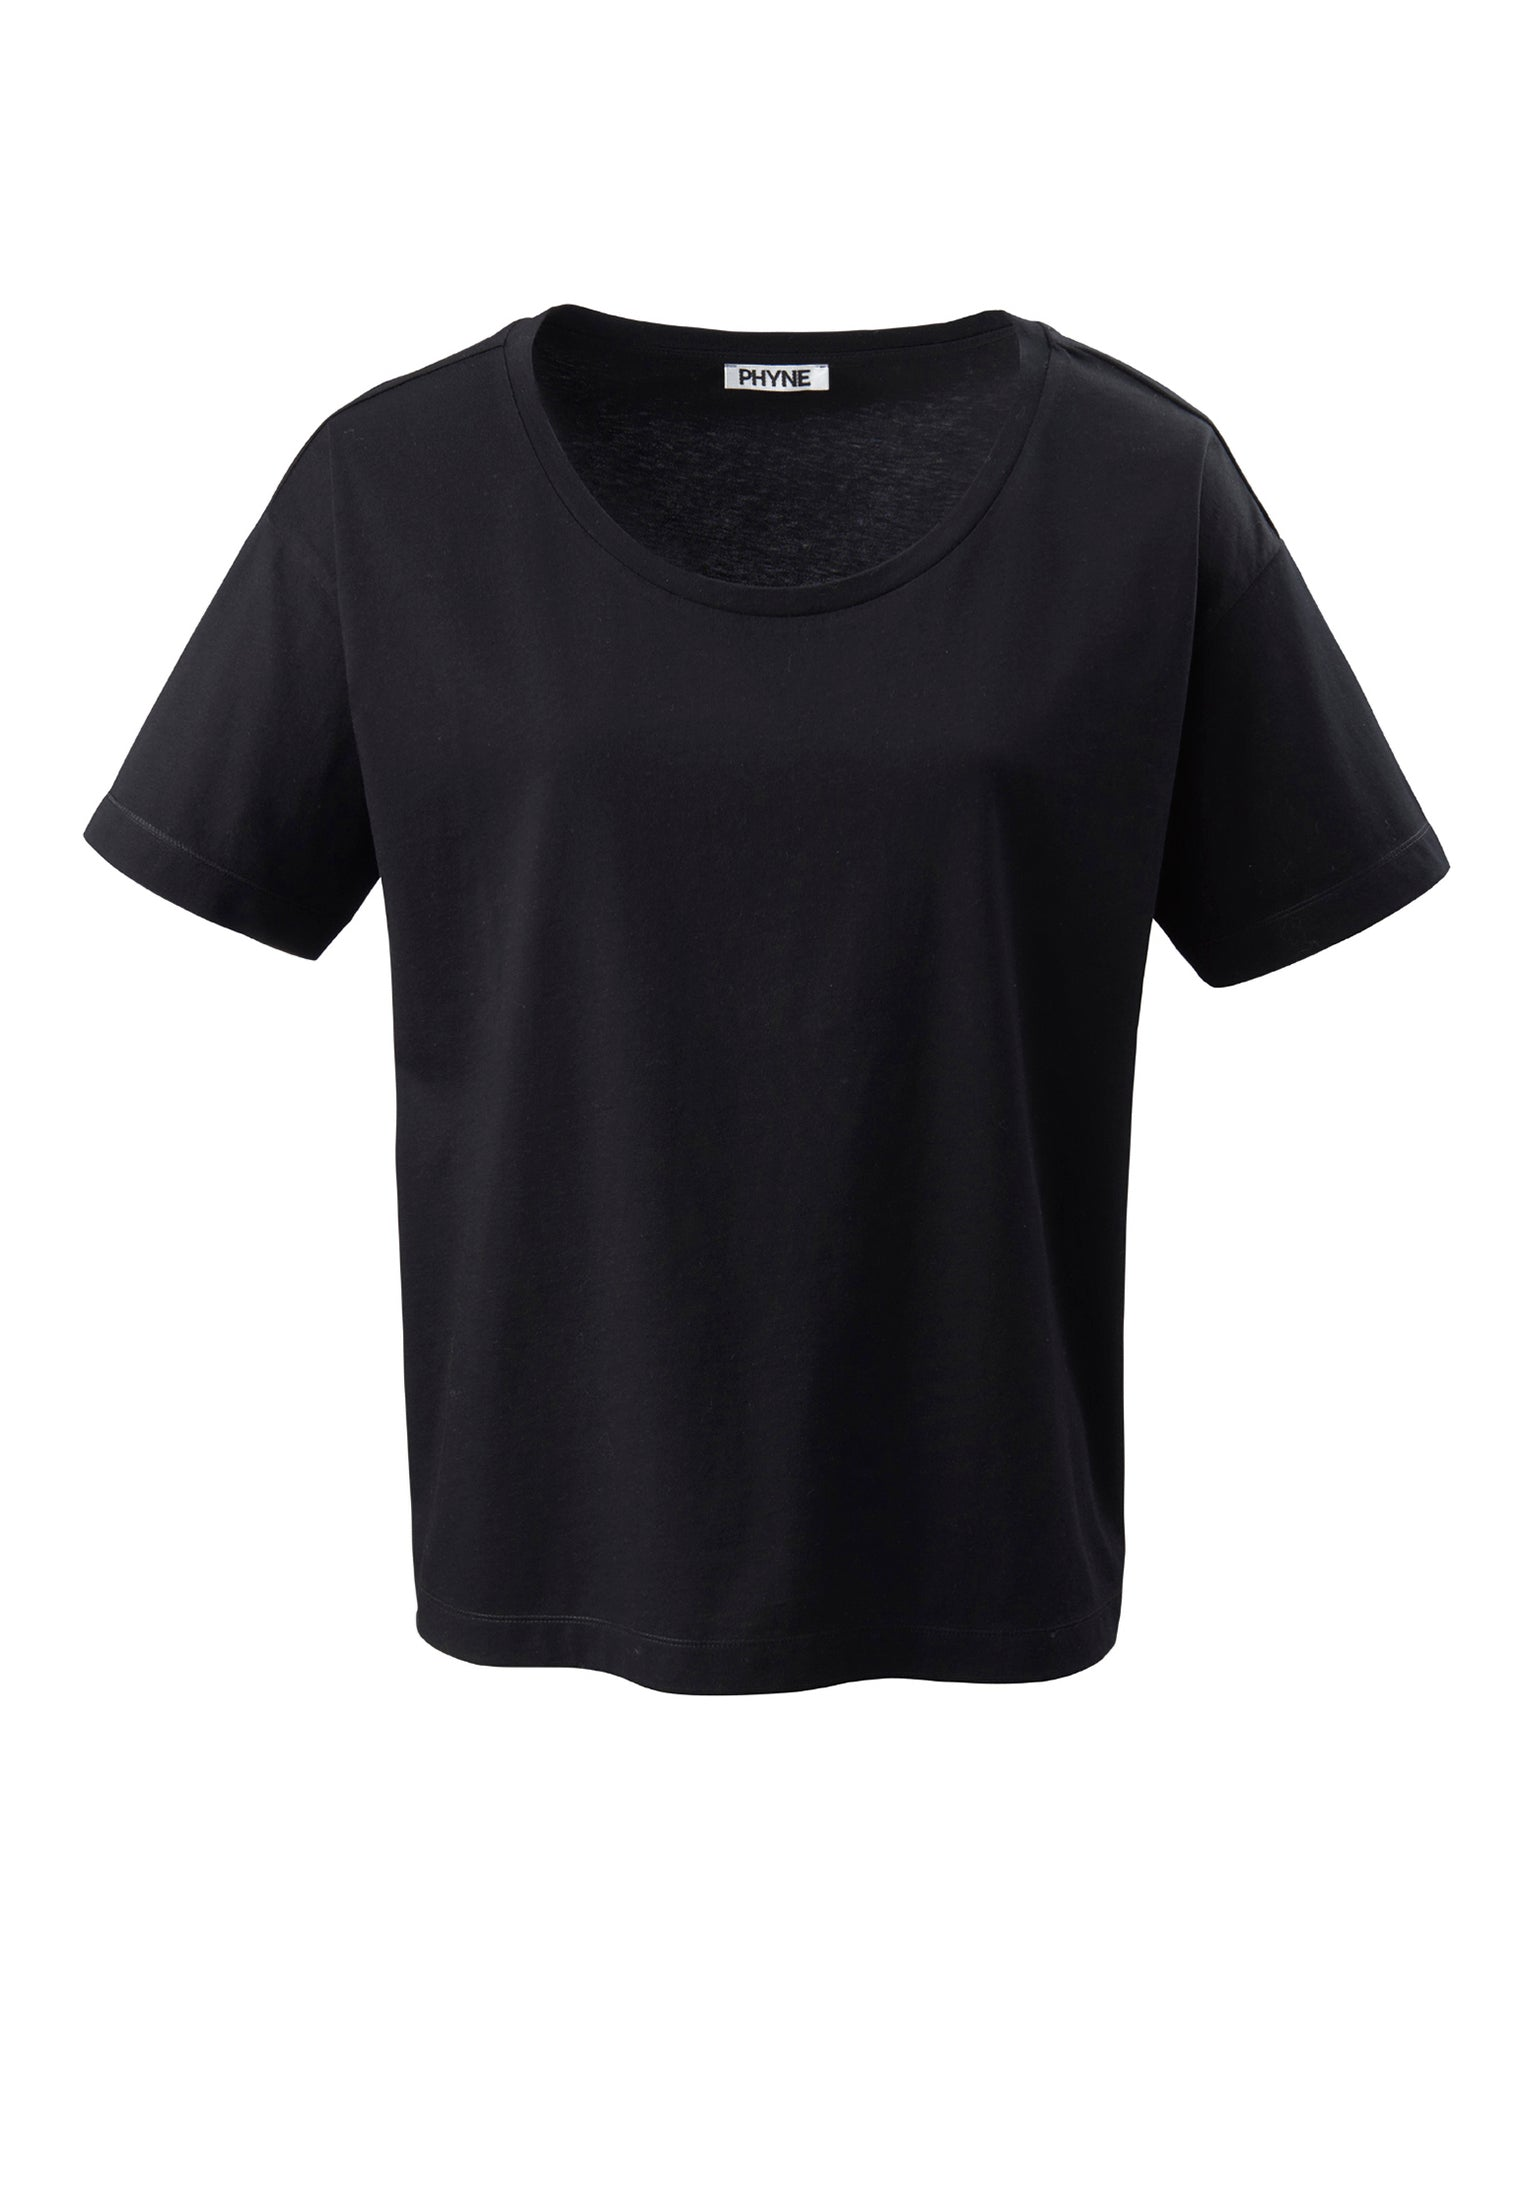 The Boxy T-Shirt Black